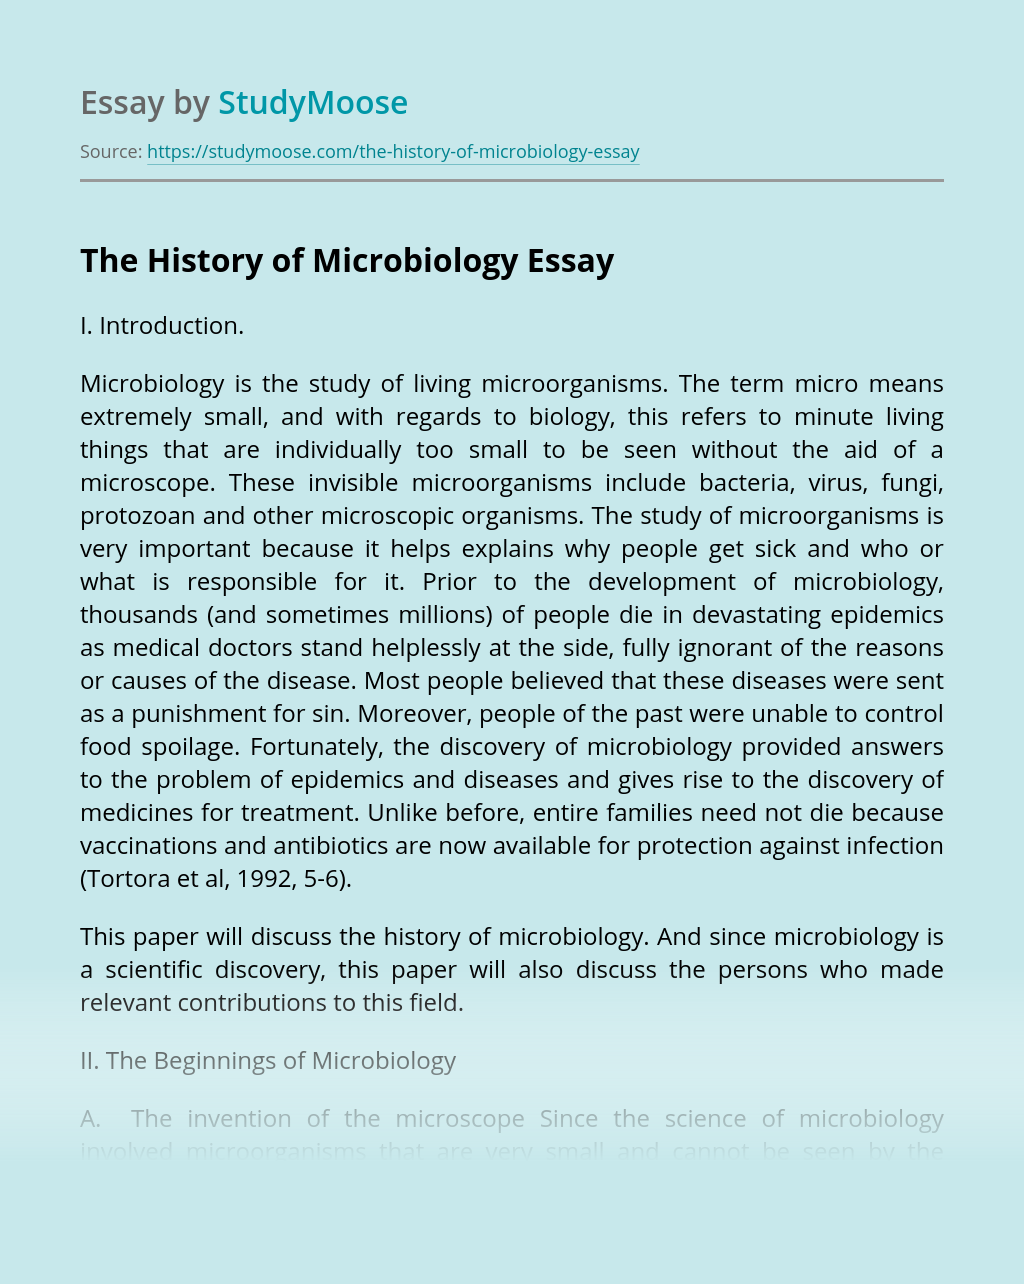 The History of Microbiology